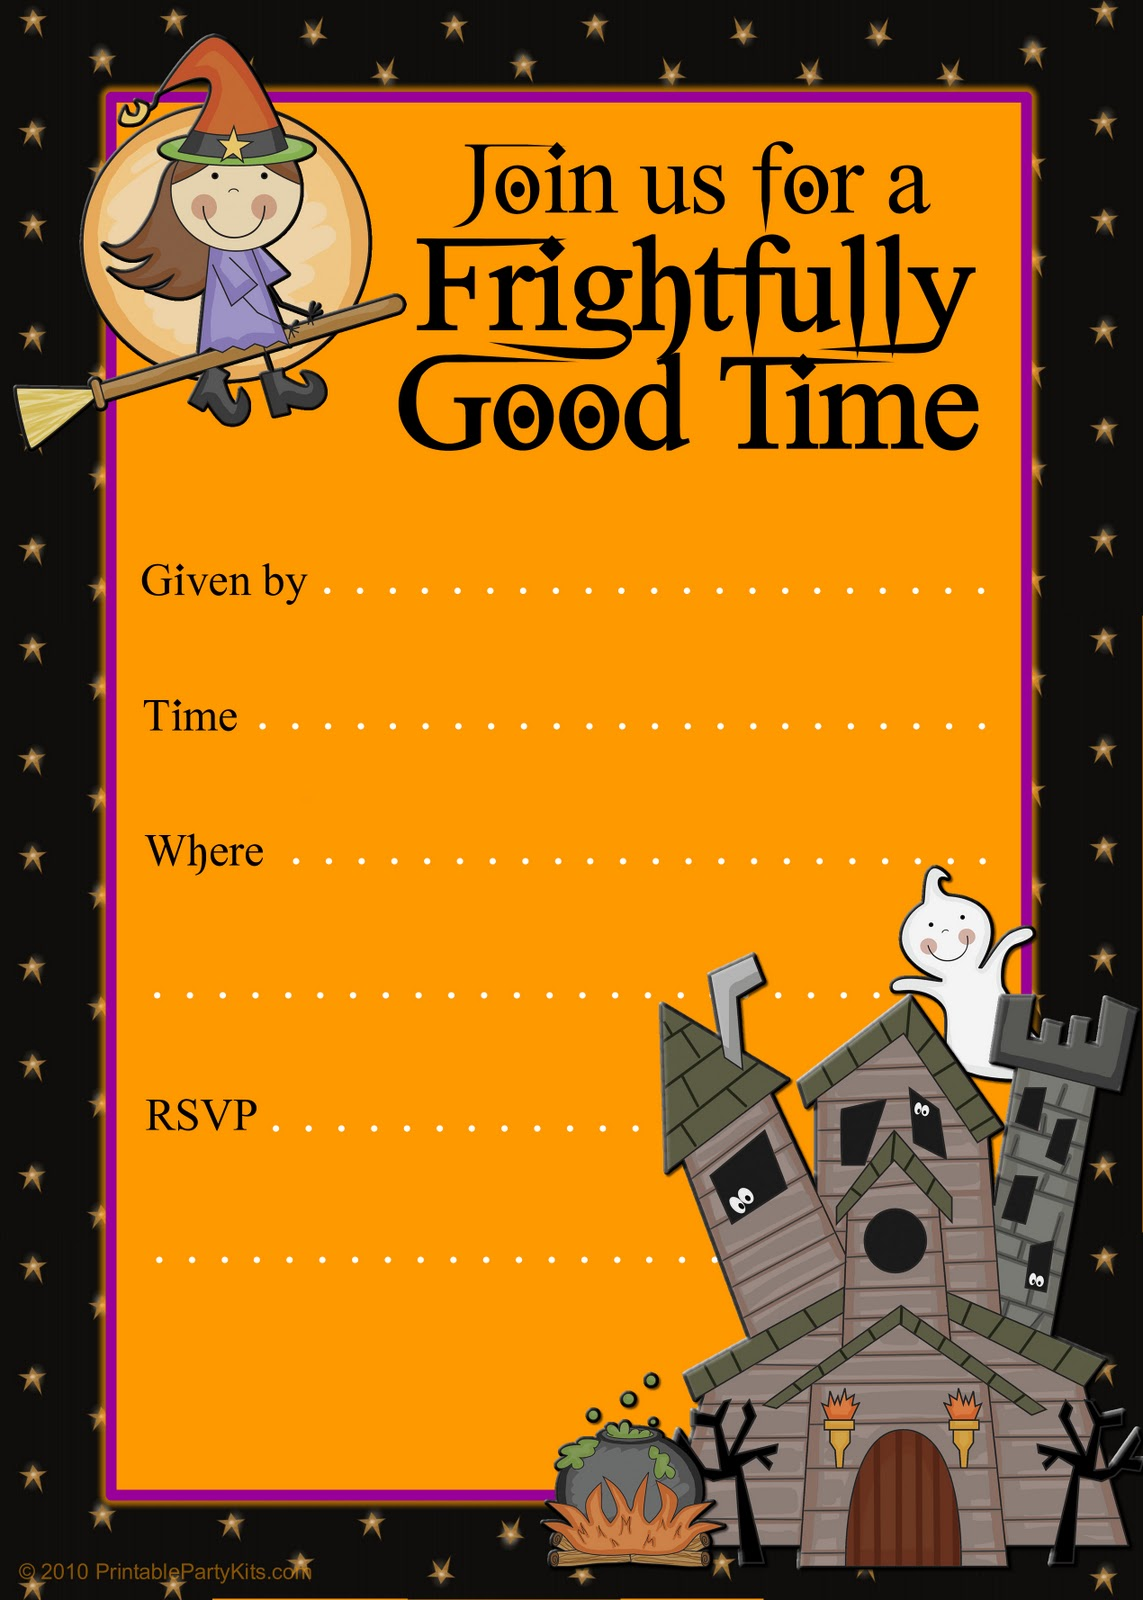 doc printable halloween party invitation templates printable halloween party invitations for adults anuvratinfo printable halloween party invitation templates